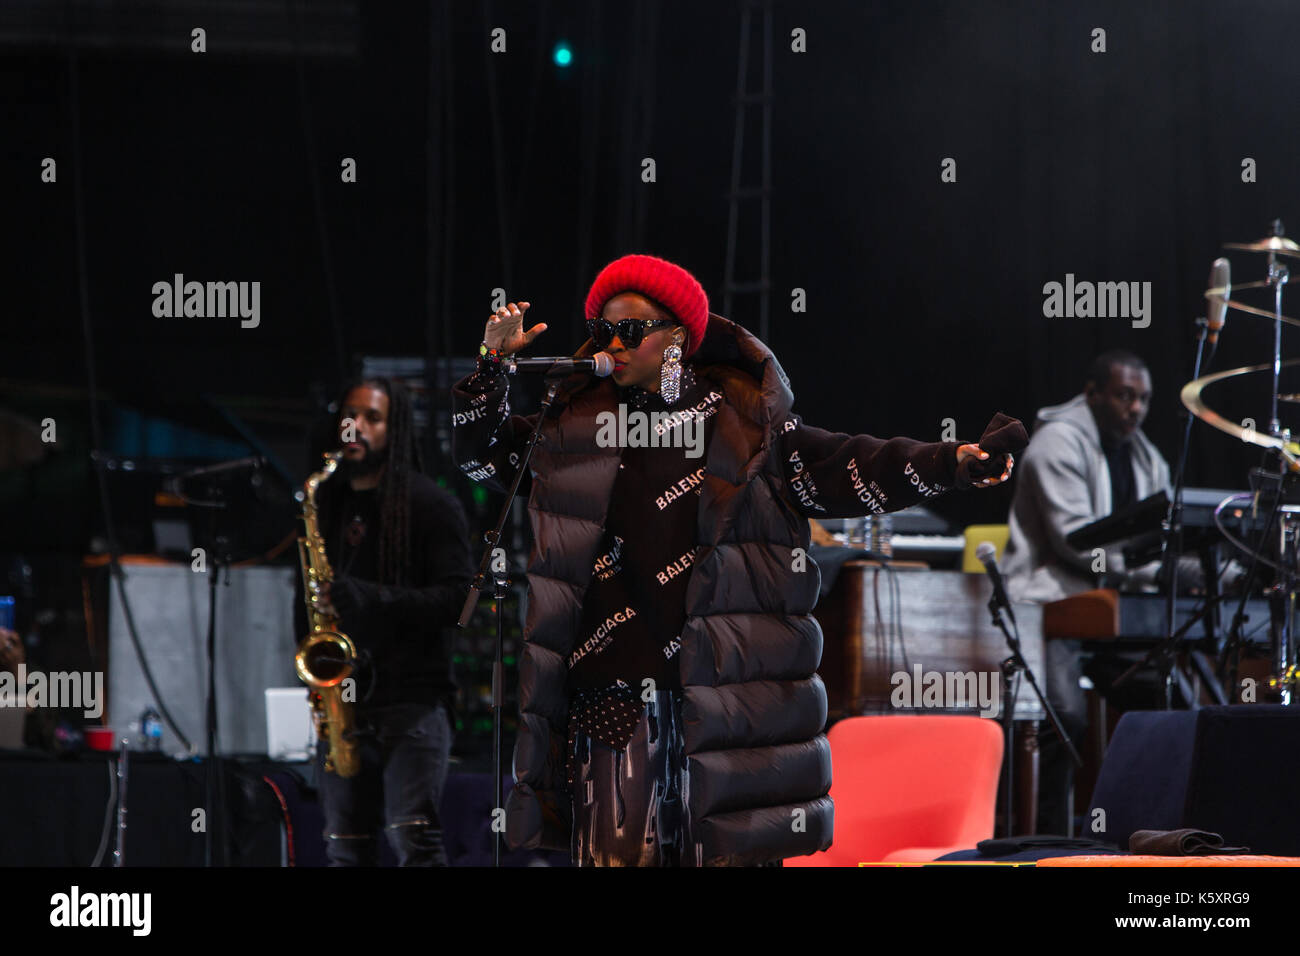 Toronto, Canada. 10th September 2017. Lauryn Hill performs at the Budweiser Stage in Toronto, on her co-headling Stock Photo